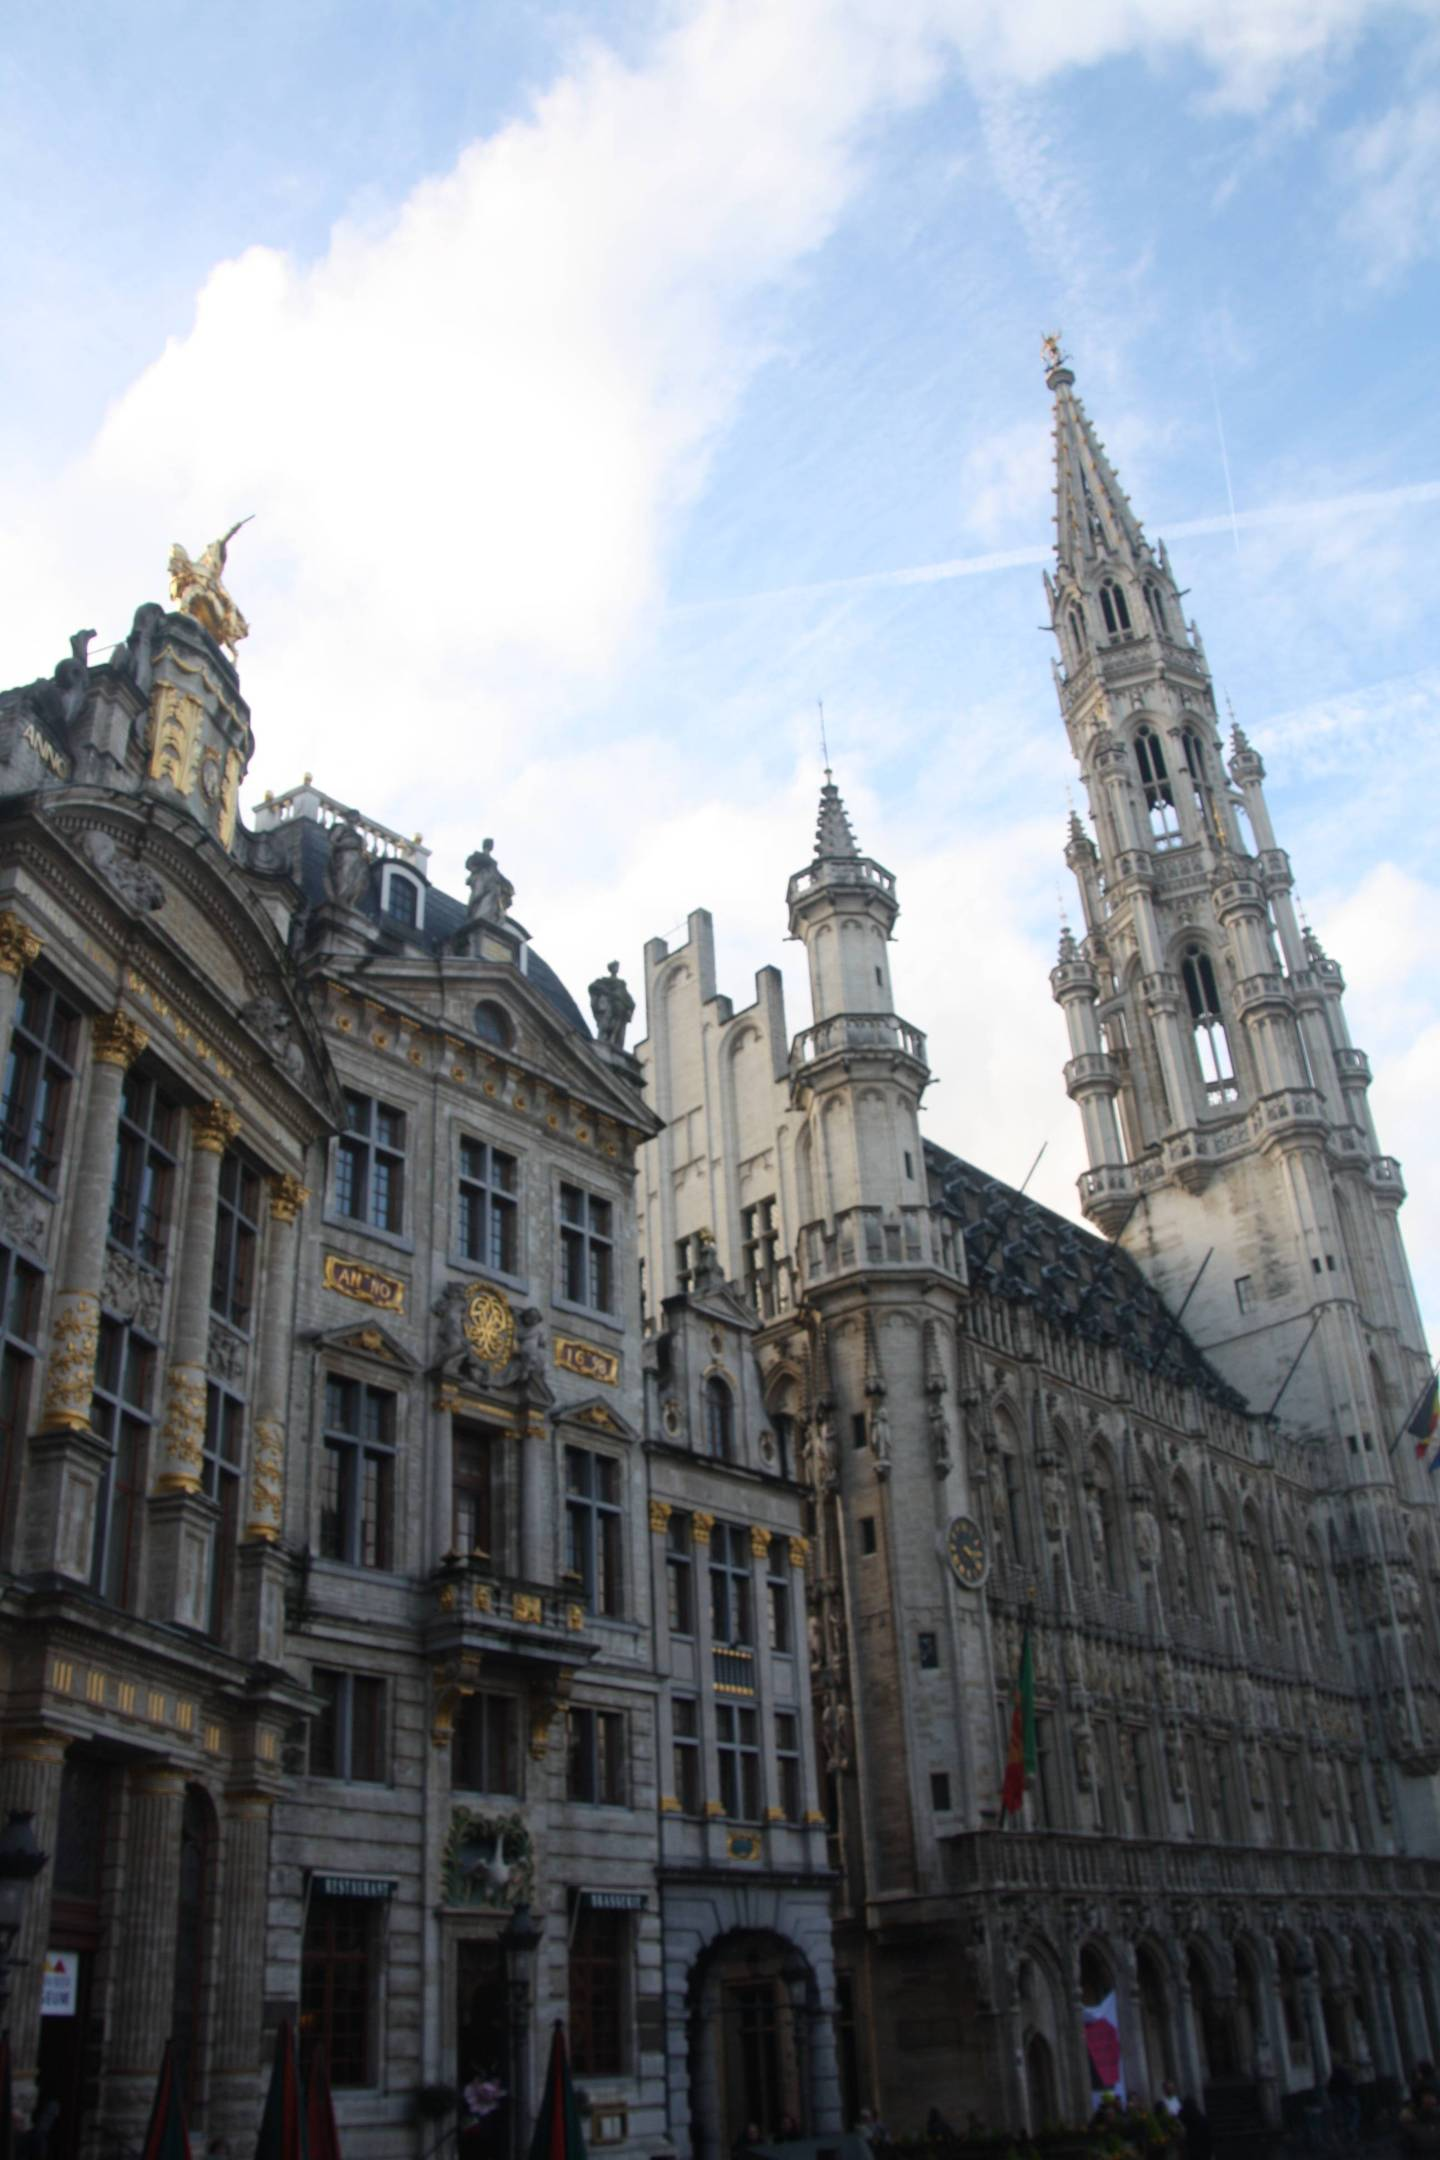 Part of the Grote Markt (Grand Place)